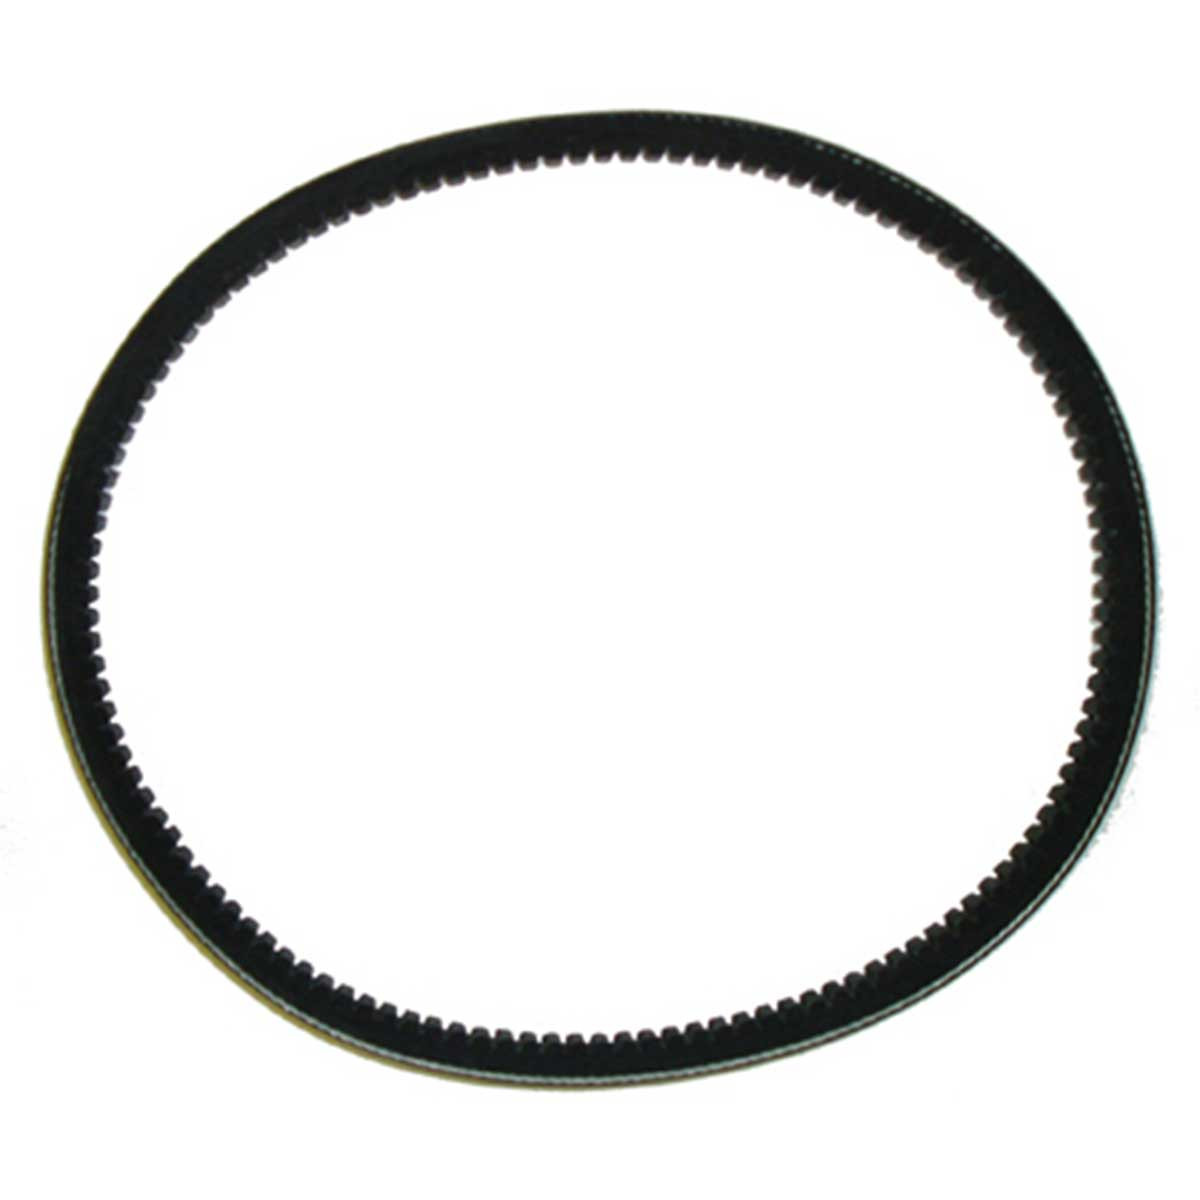 V-Belt for MK-100, MK-100JCS, MK-101, MK-101JCS Tile Saws